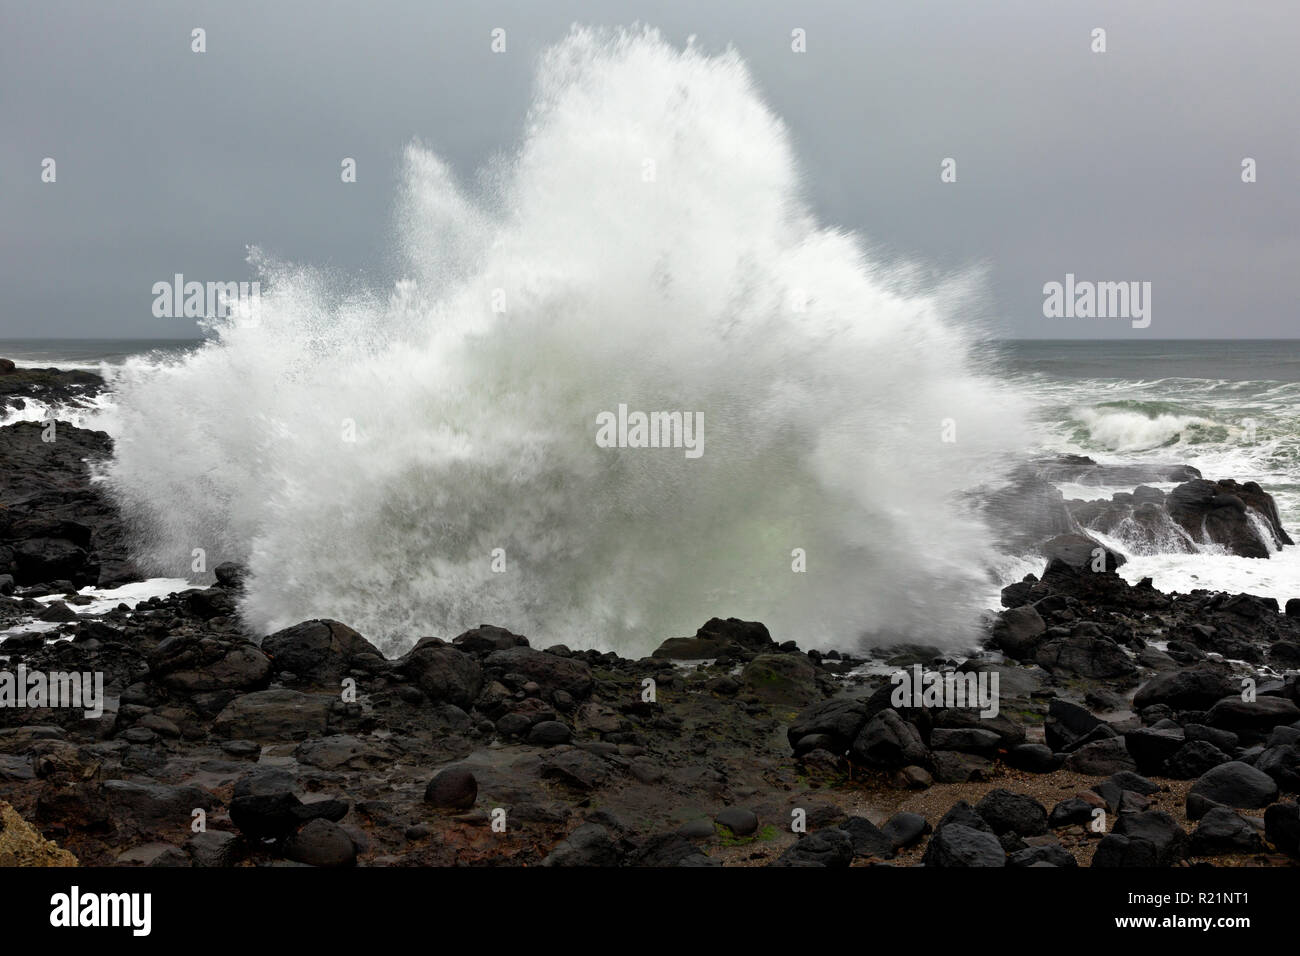 OR02394-00...OREGON - Crashing wave on a stormy day at Smelt Sands State Recreation Stie - Stock Image